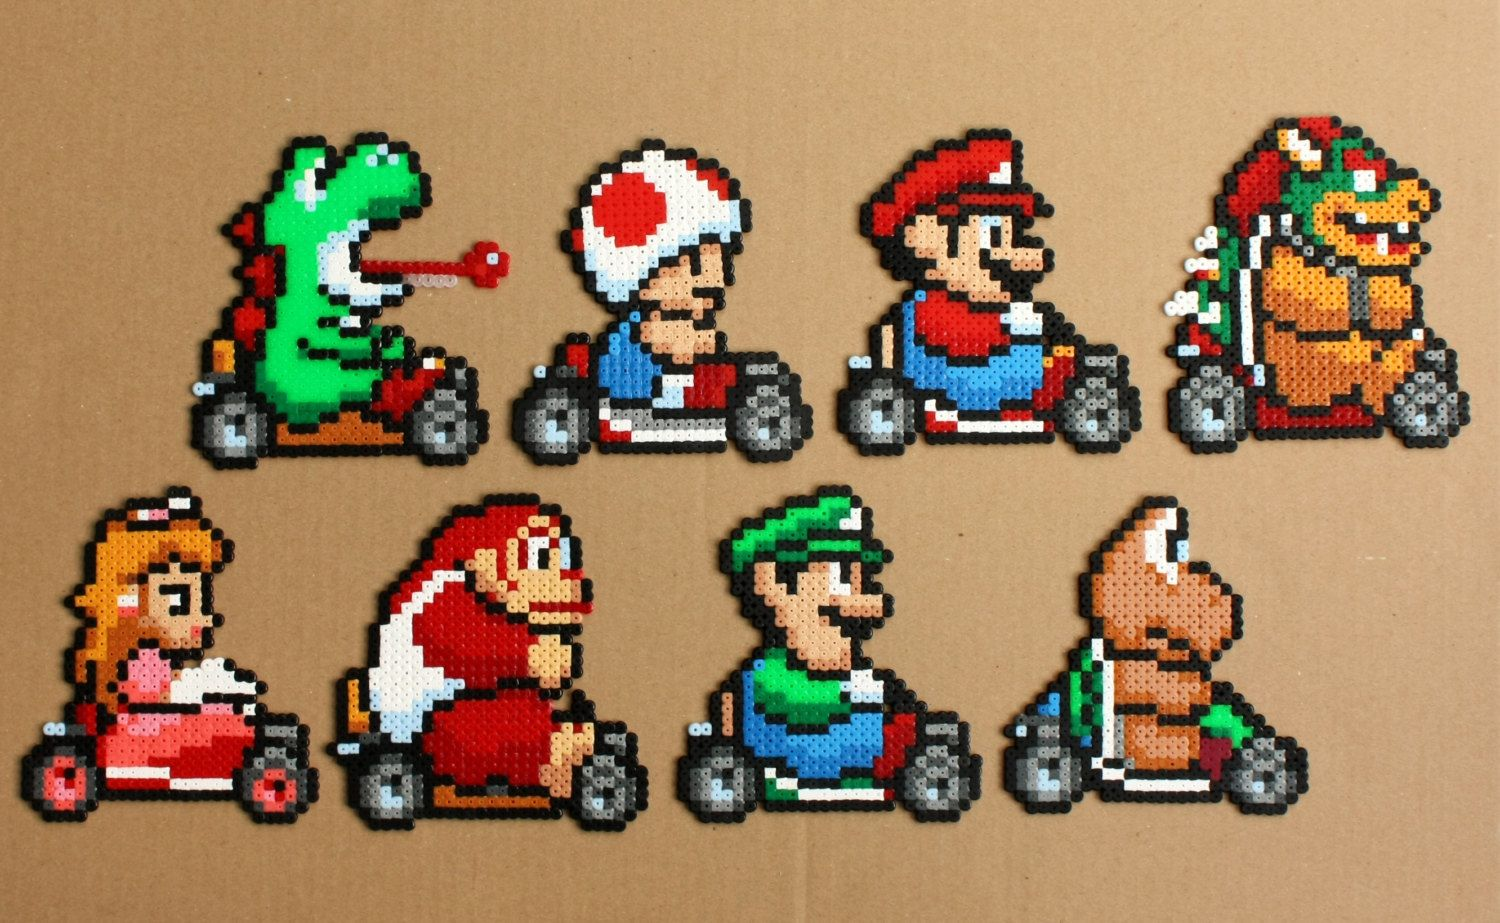 Bead sprites of all the characters from the popular racing